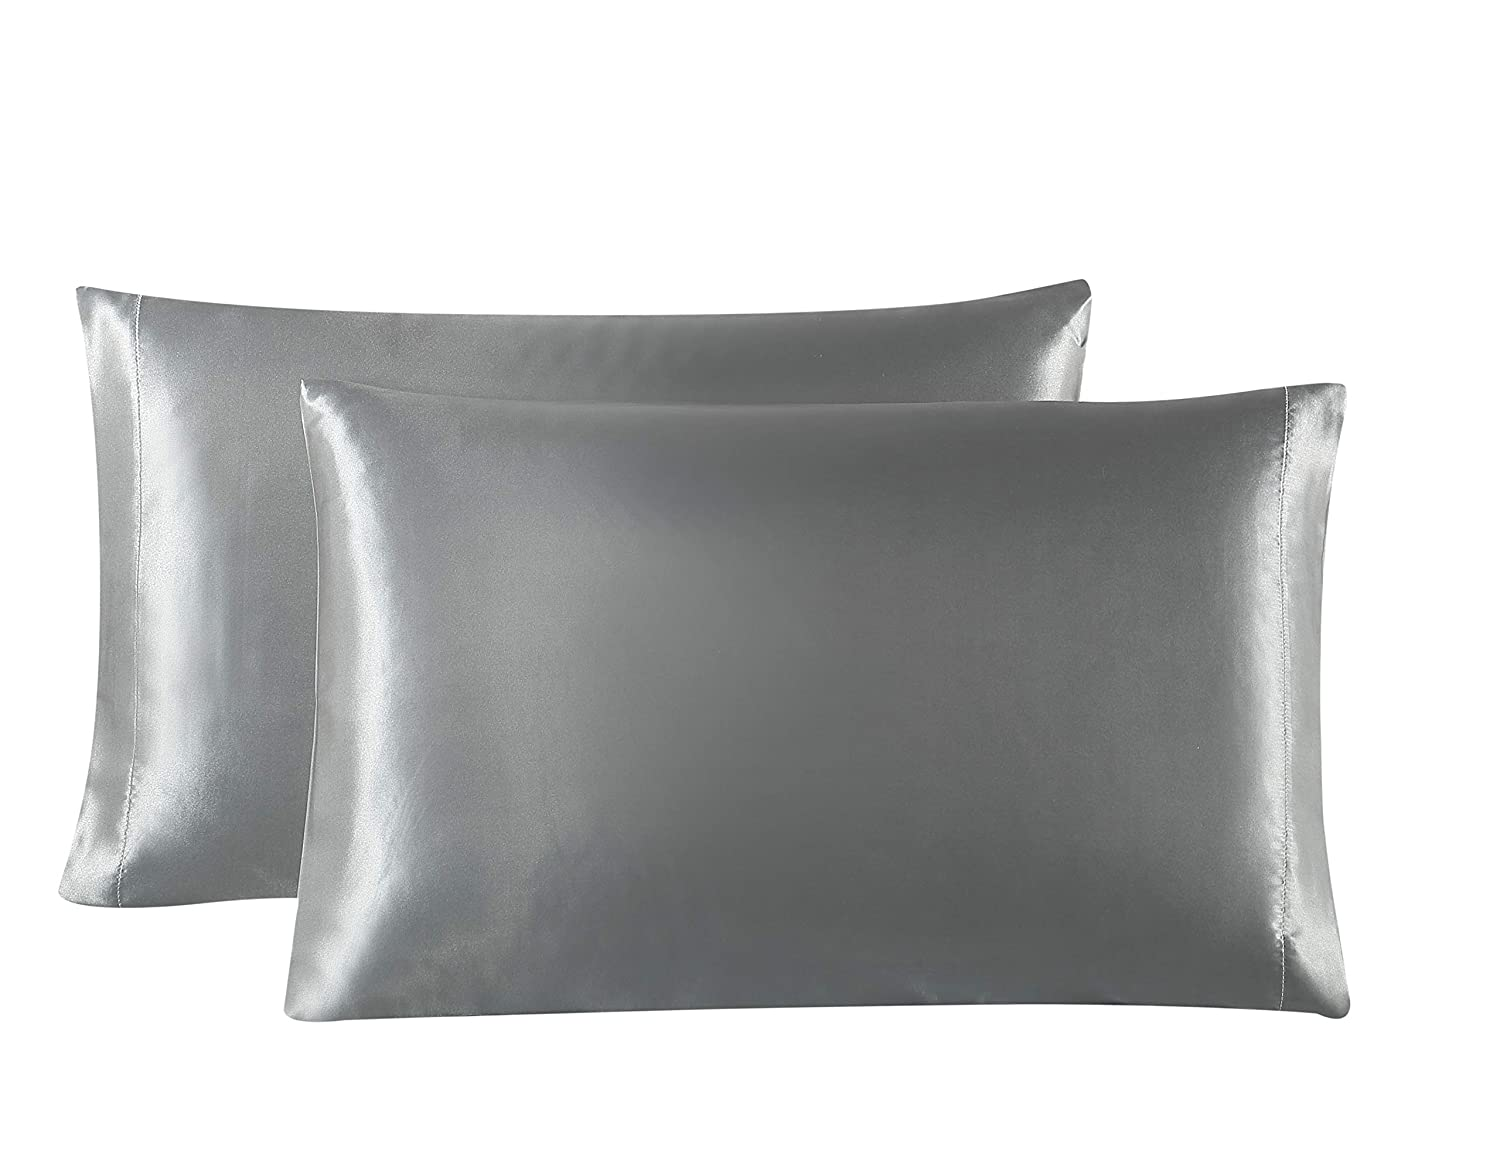 Love's cabin Silk Satin Pillowcase for Hair and Skin (Dark Gray, 20x30 inches) Slip Pillow Cases Queen Size Set of 2 - Satin Cooling Pillow Covers with Envelope Closure